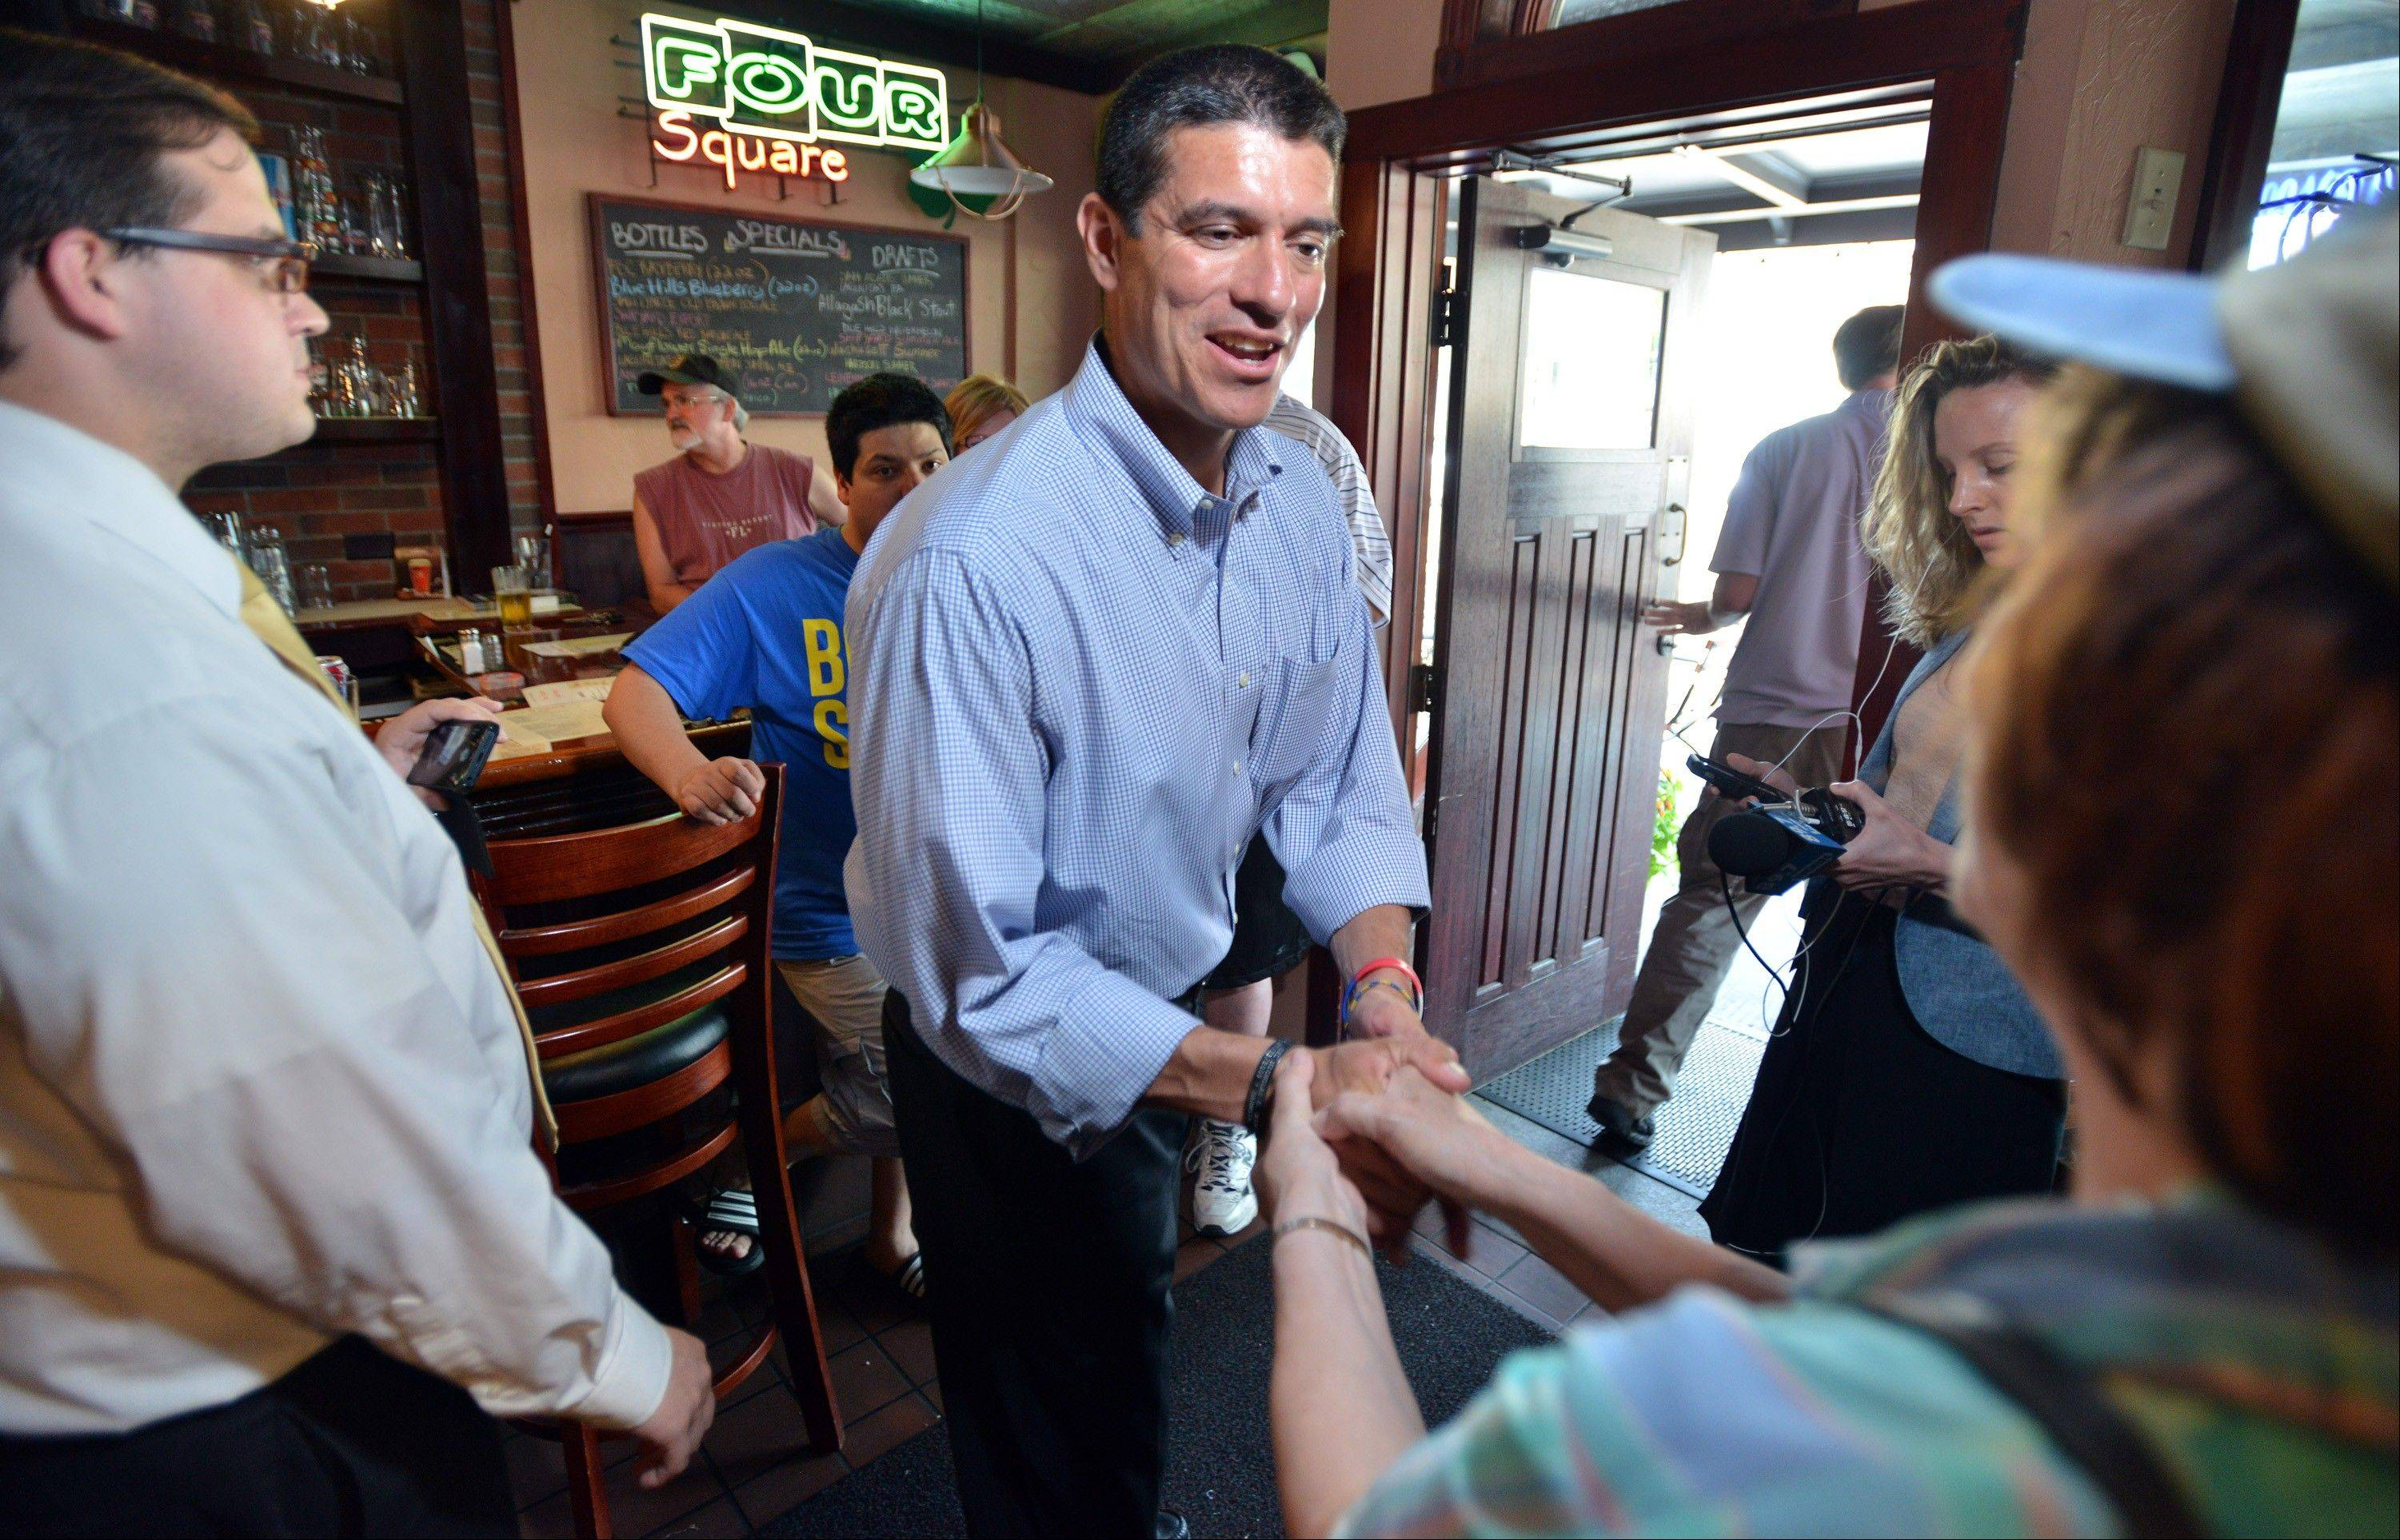 Gabriel Gomez, Republican candidate for U.S. Senate in the Massachusetts open seat special election, greets supporters, Monday, June 24, 2013, at the Four Square restaurant in Braintree, Mass. Gomez faces Democrat Rep. Ed Markey in Tuesday's election.